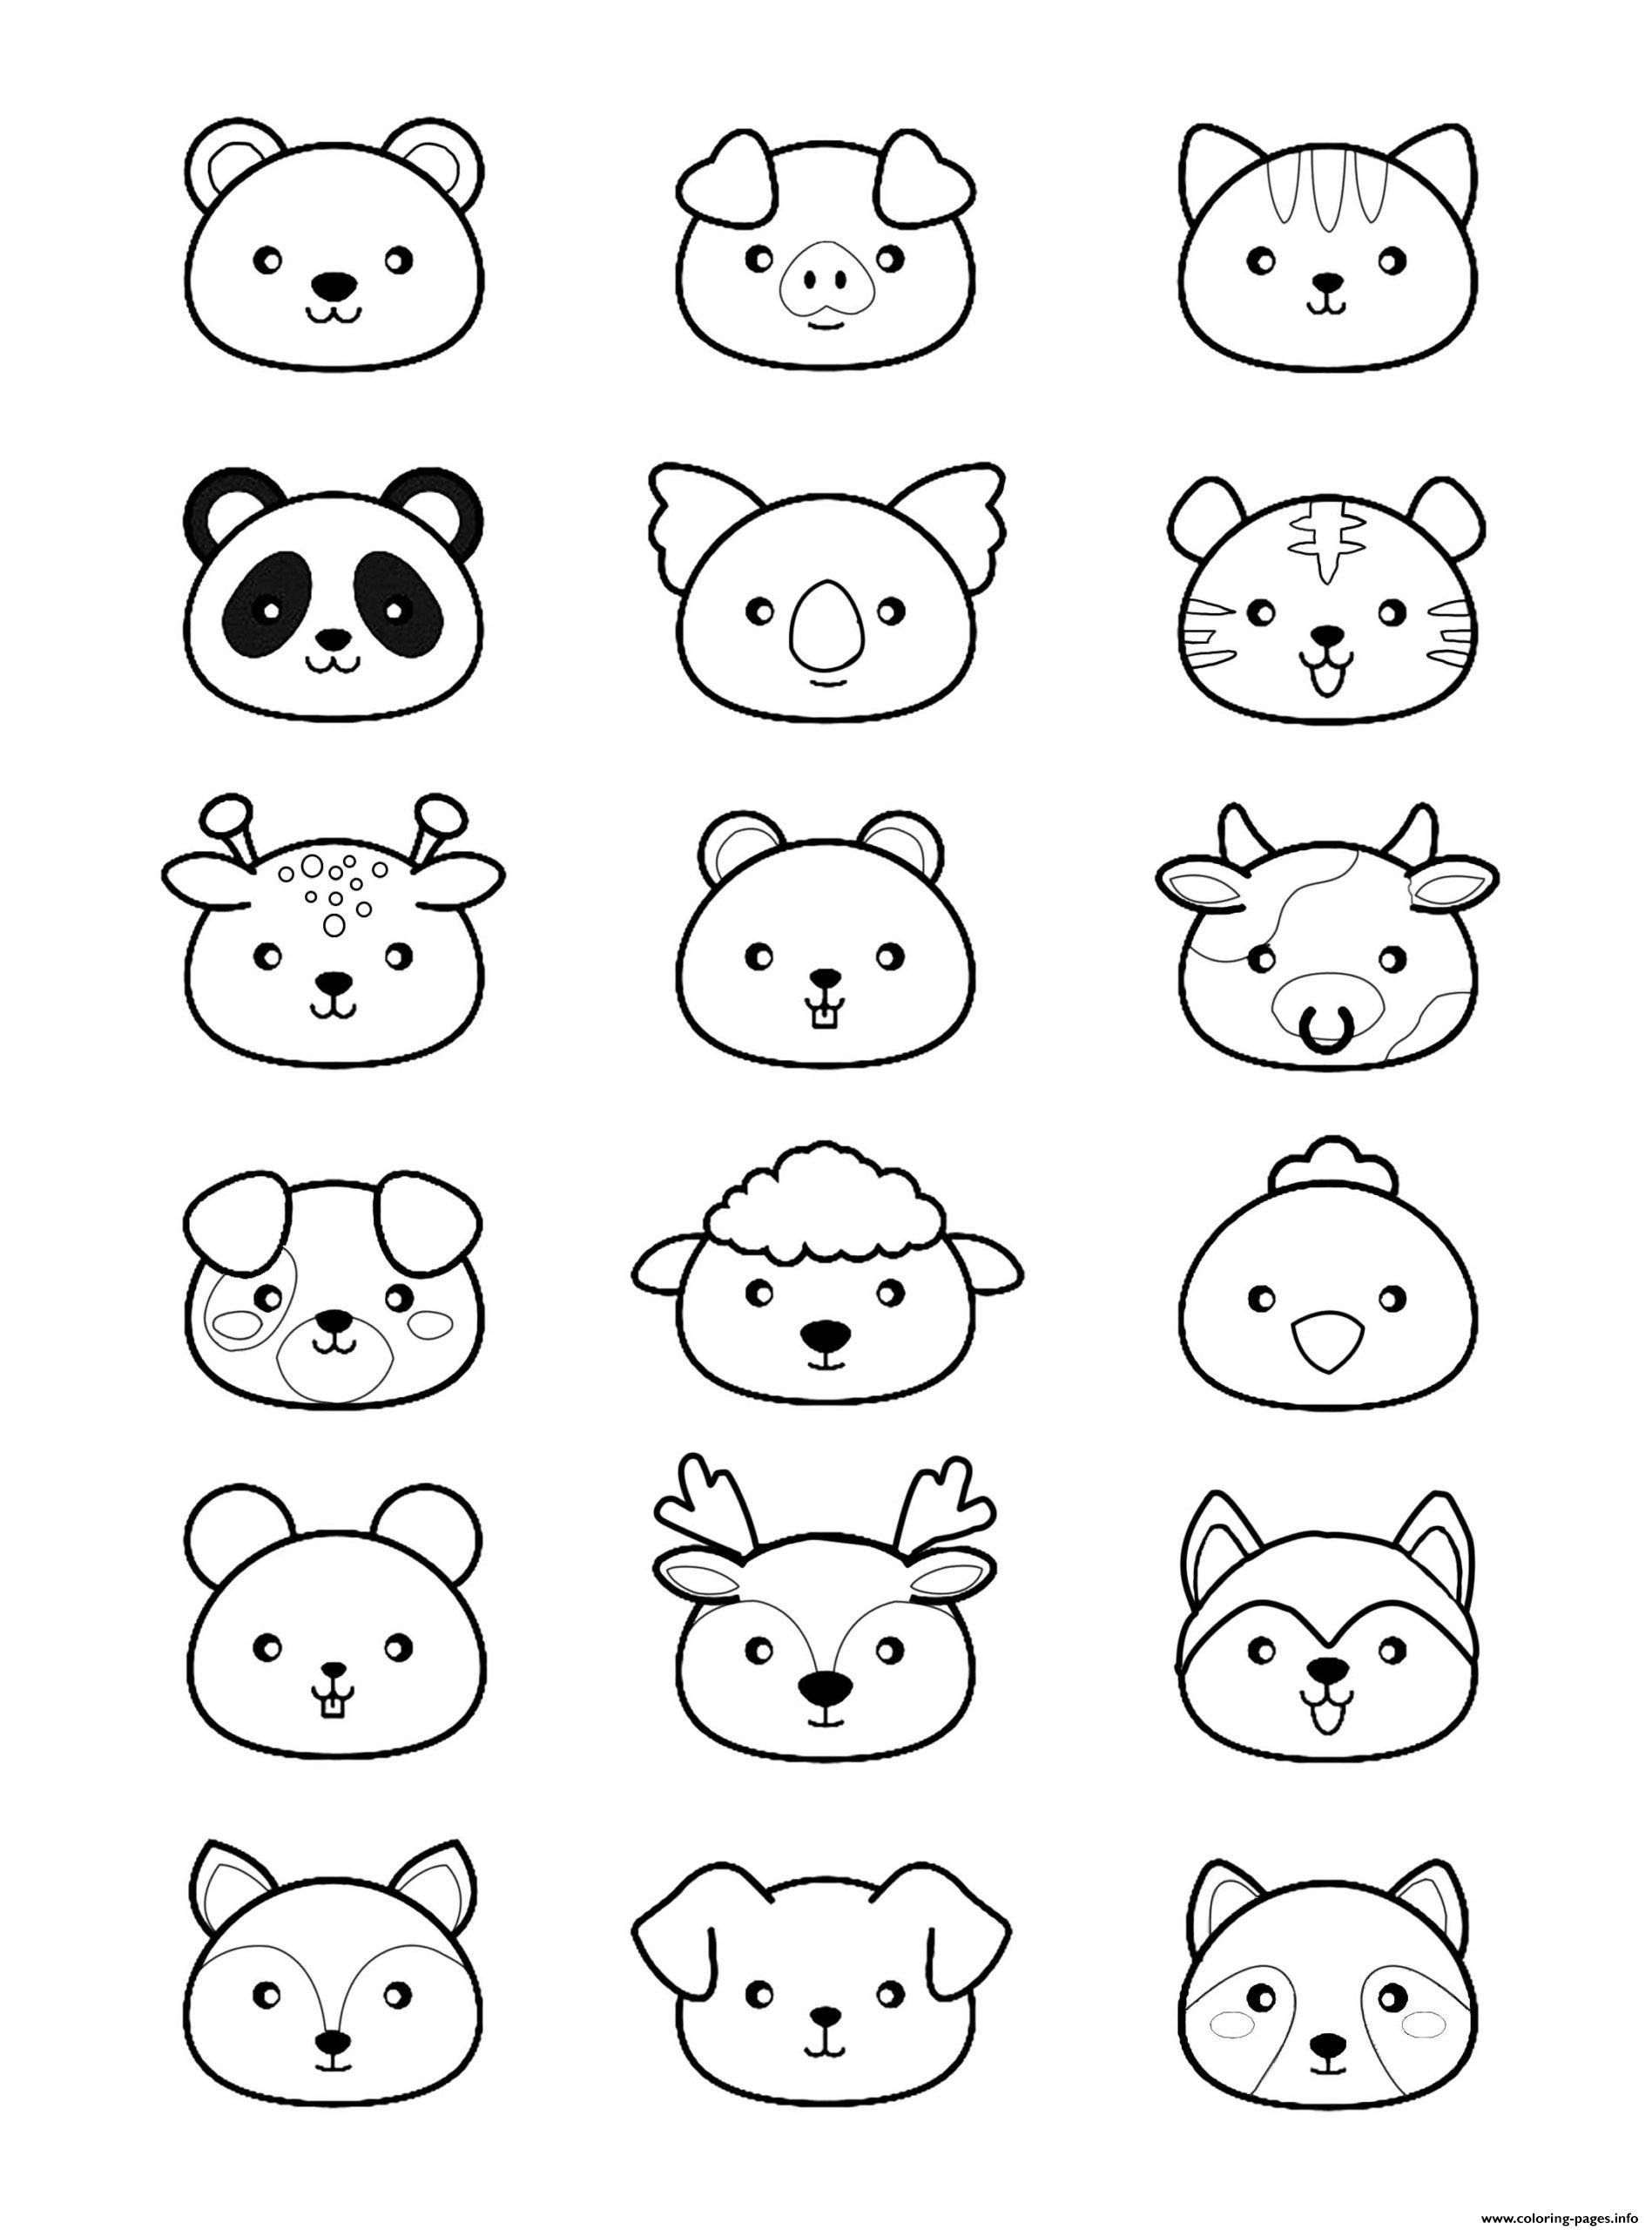 Cute Coloring Page Printable Animals Kawaii Cute Coloring Pages Printable In 2020 Panda Coloring Pages Cute Kawaii Drawings Cute Coloring Pages